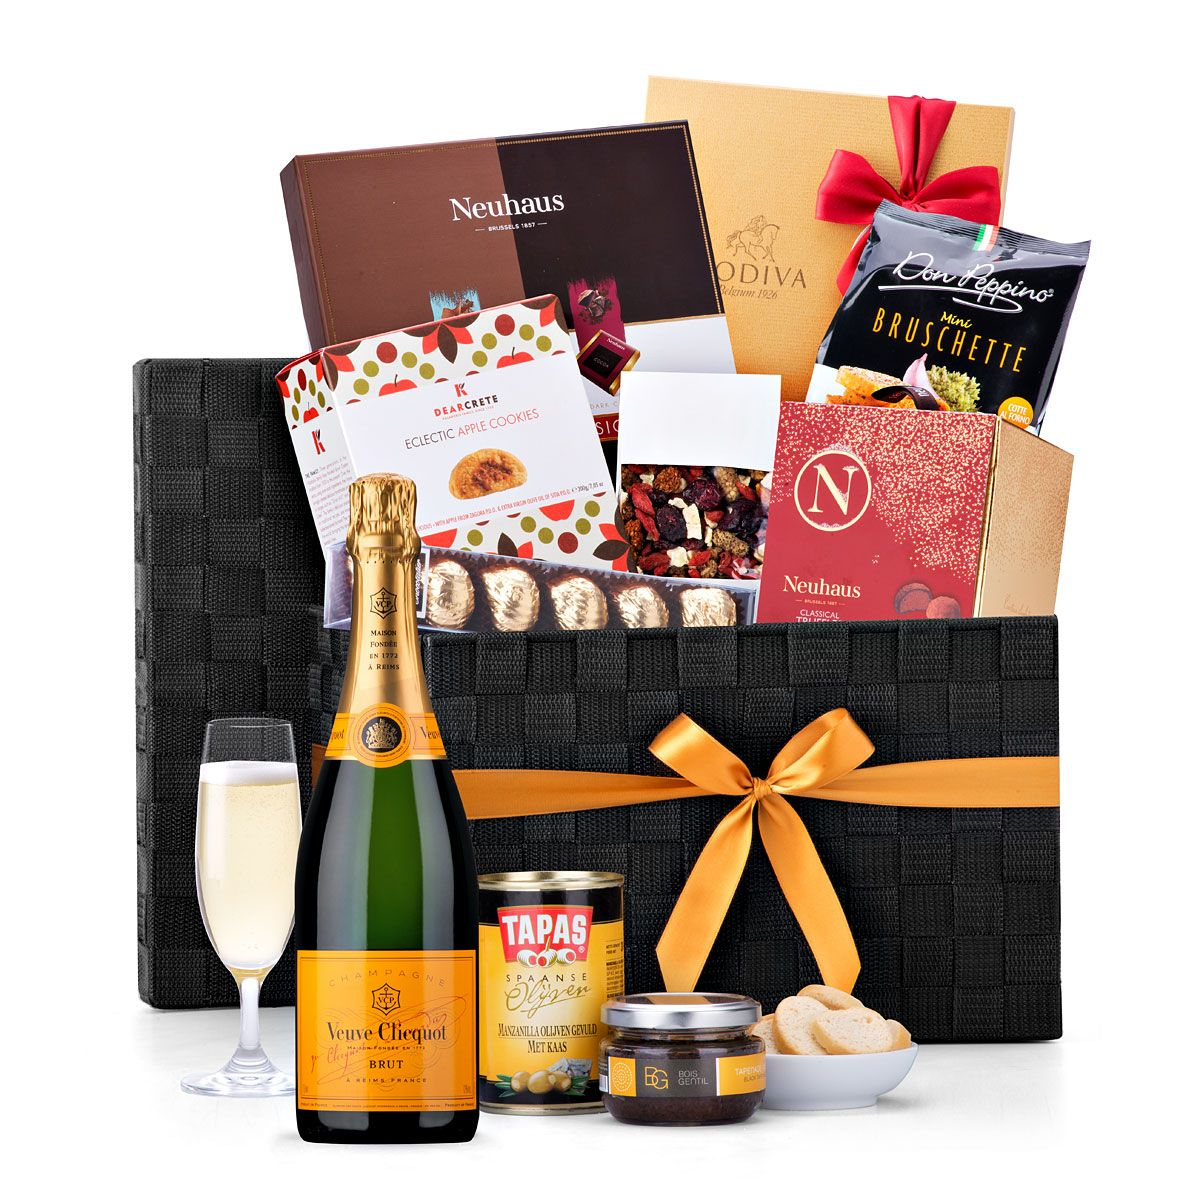 The Ultimate Gourmet Hamper Veuve Clicquot Is A Truly Spectacular Gift Basket It